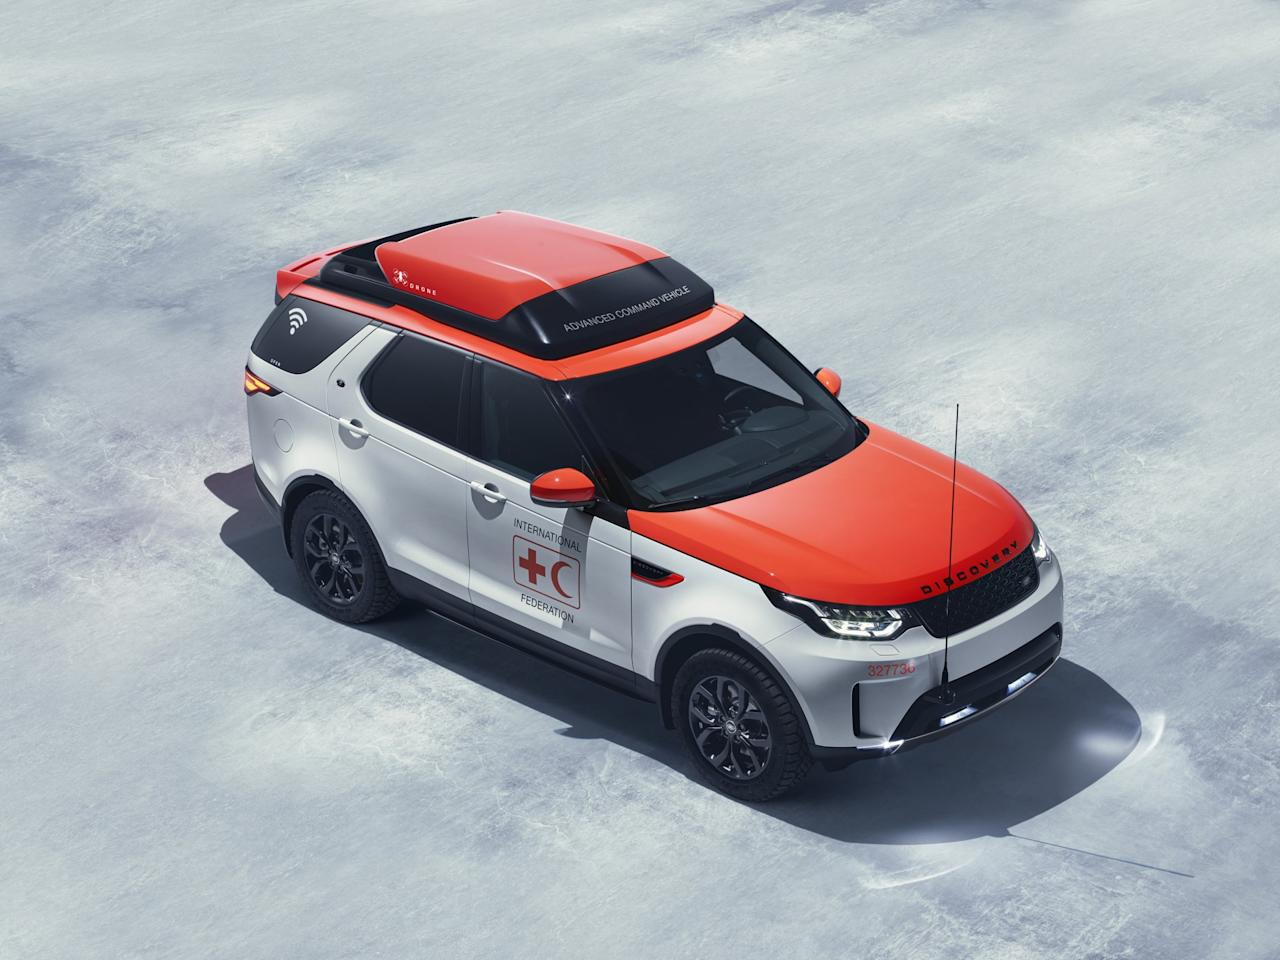 """<p>""""The new Discovery is an outstanding all-terrain SUV, and Project Hero is the optimum combination of enhanced capability and innovative technology. We hope to help the Red Cross save lives in emergency situations,"""" saidJohn Edwards, Jaguar Land Rover special operations managing director. </p>"""